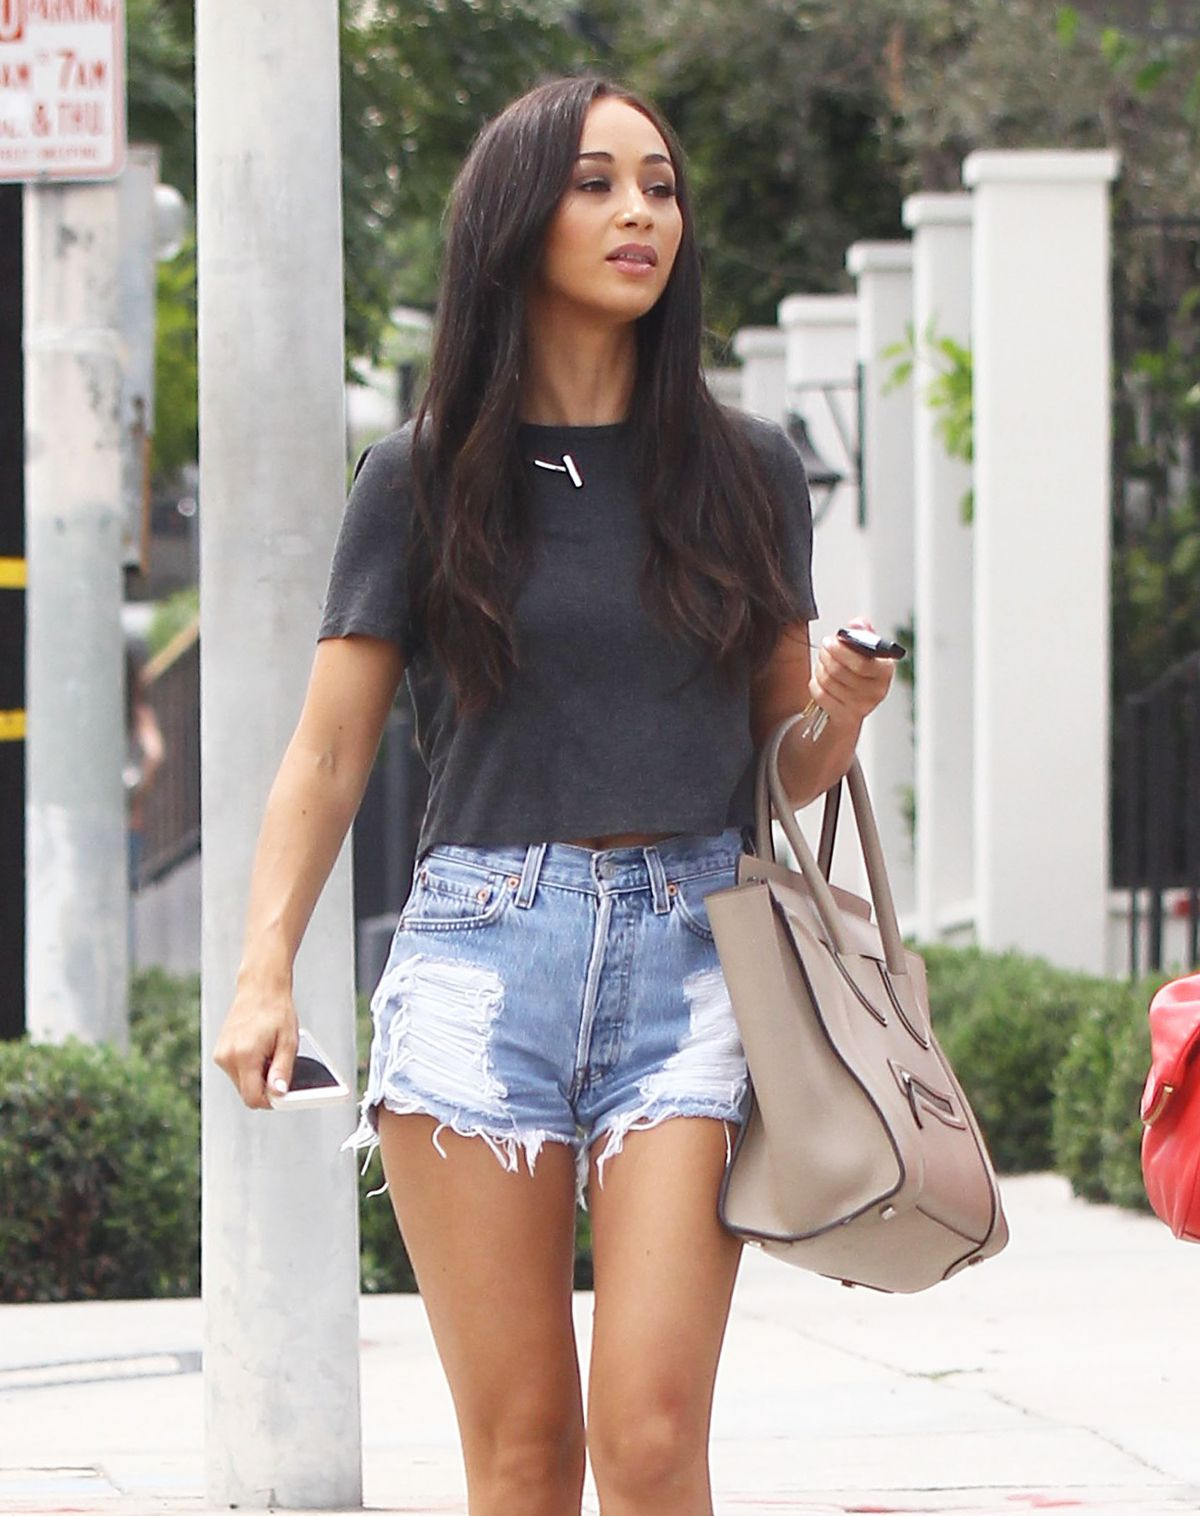 CARA SANTANA in Denim Shorts Out nd About in Los Angeles 08/03/2015